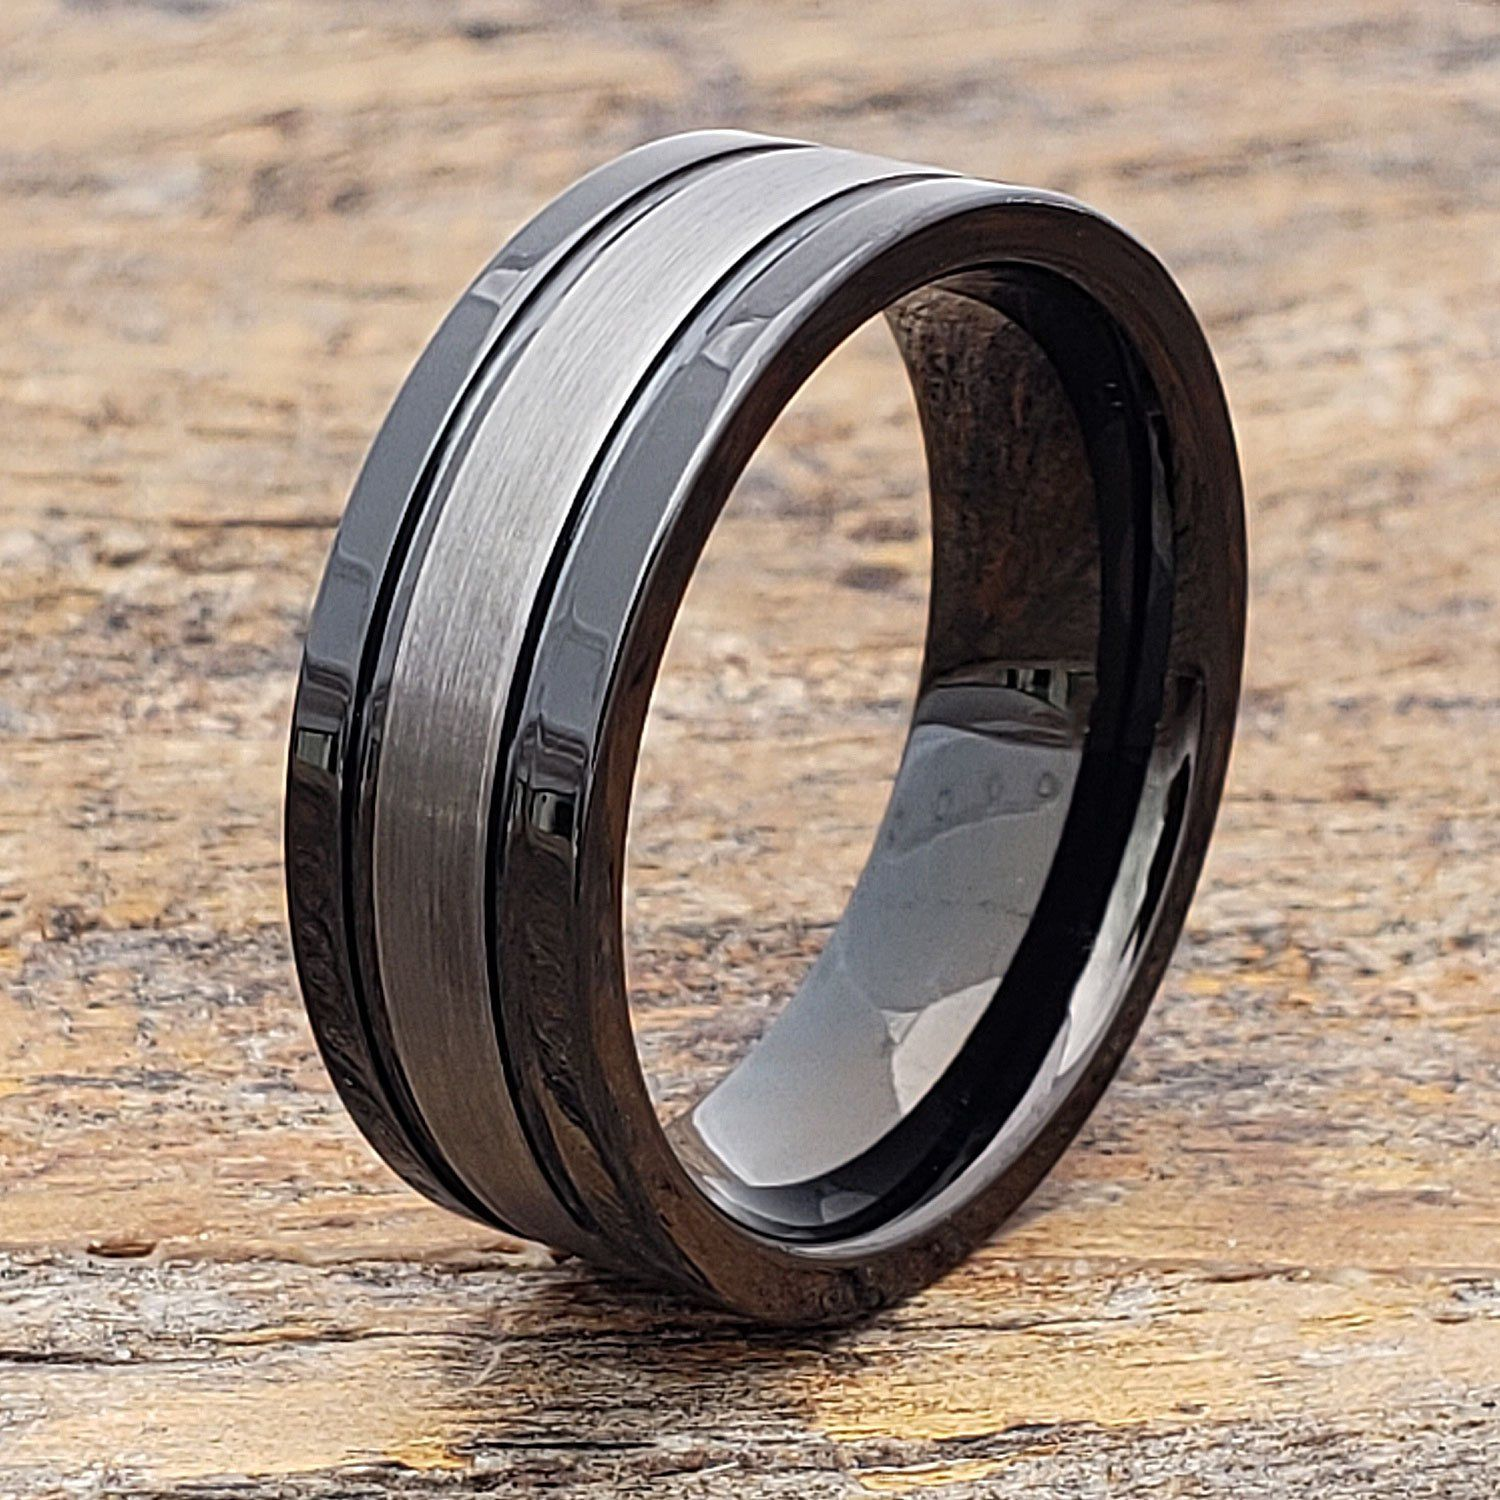 Blacksnow Black Tungsten Carbide Wedding Band With A Brushed Finish 4mm 12mm Black Tungsten Rings Tungsten Carbide Wedding Bands Tungsten Wedding Bands